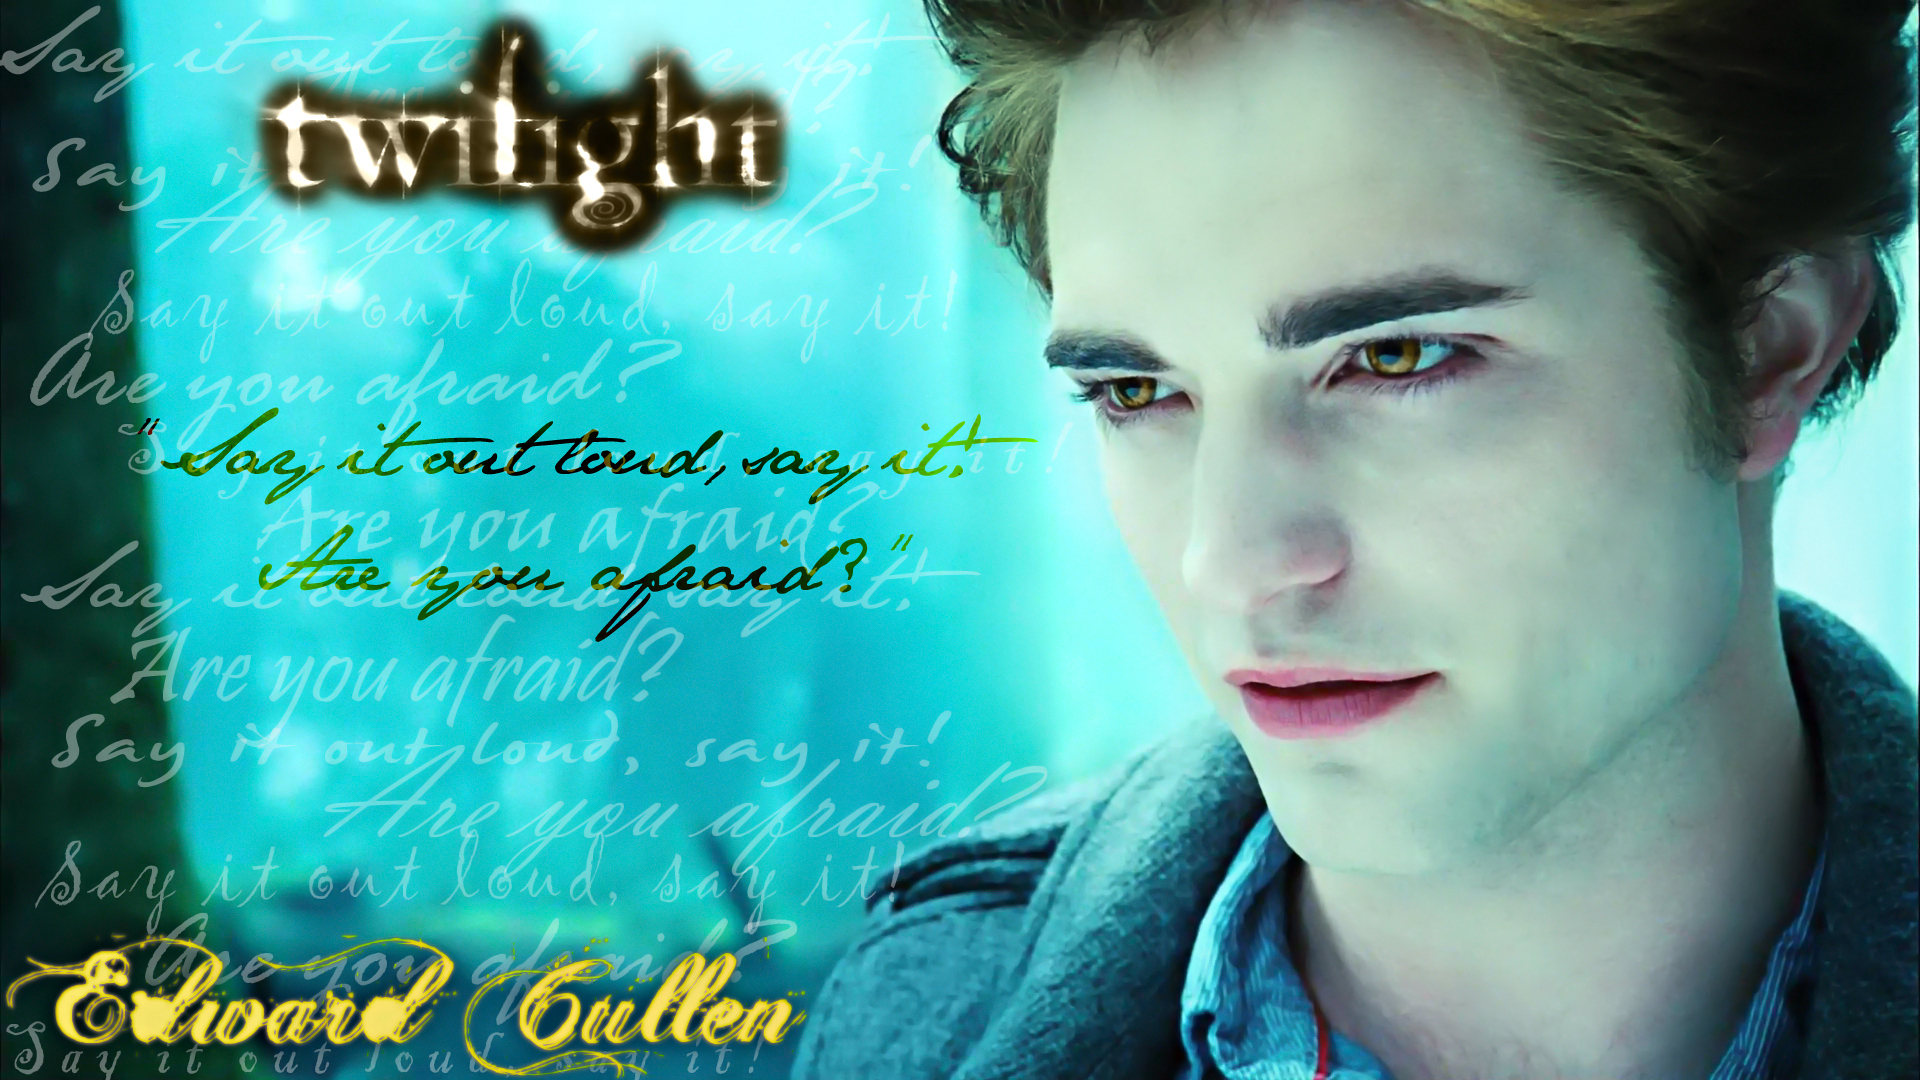 edward cullen - Edward Cullen Photo (17582920) - Fanpop Edwardcullen